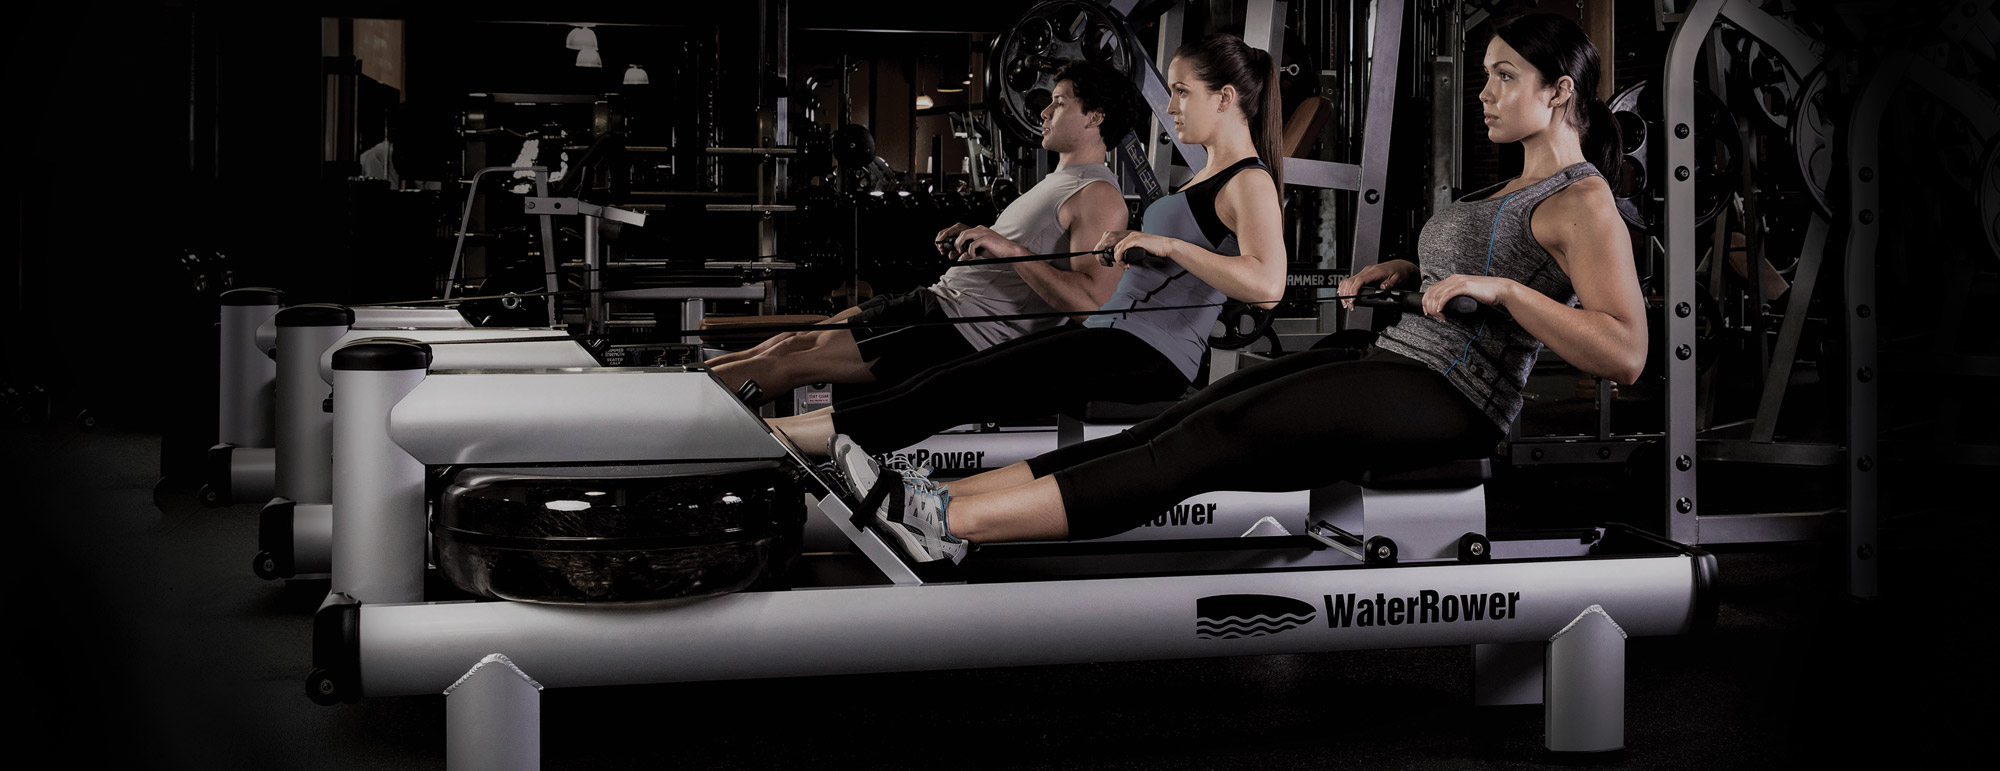 waterrower in the gym group fitness classes